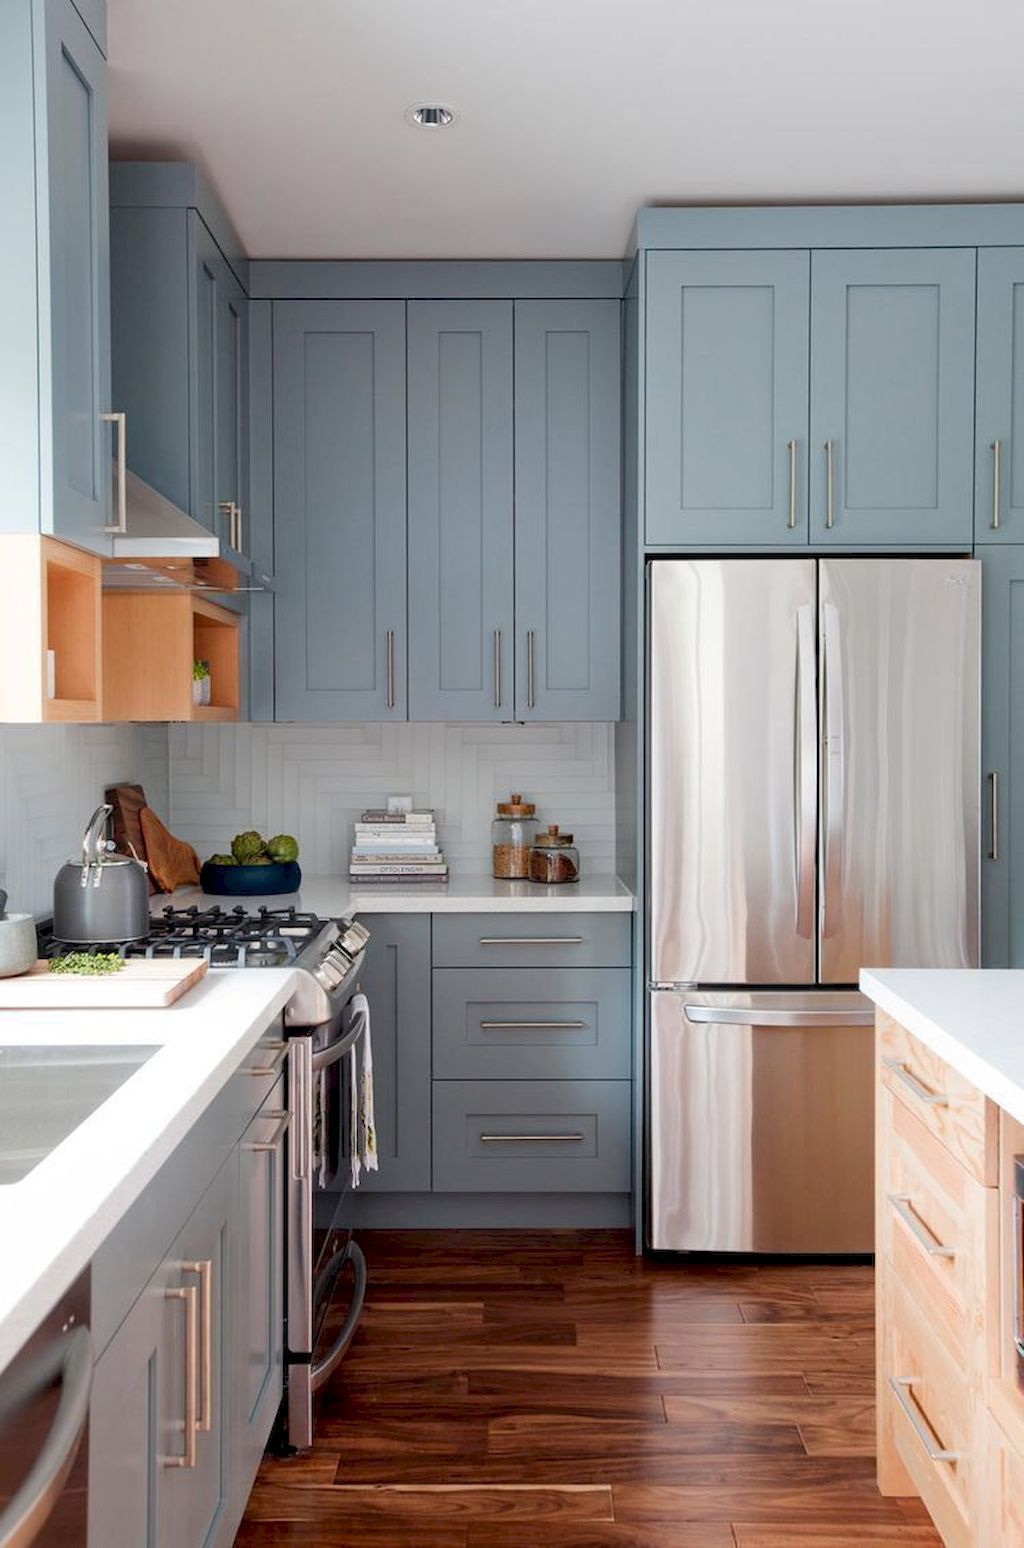 65 Incredible Farmhouse Gray Kitchen Cabinet Design Ideas   Grey     Adorable 65 Incredible Farmhouse Gray Kitchen Cabinet Design Ideas  https   wholiving com